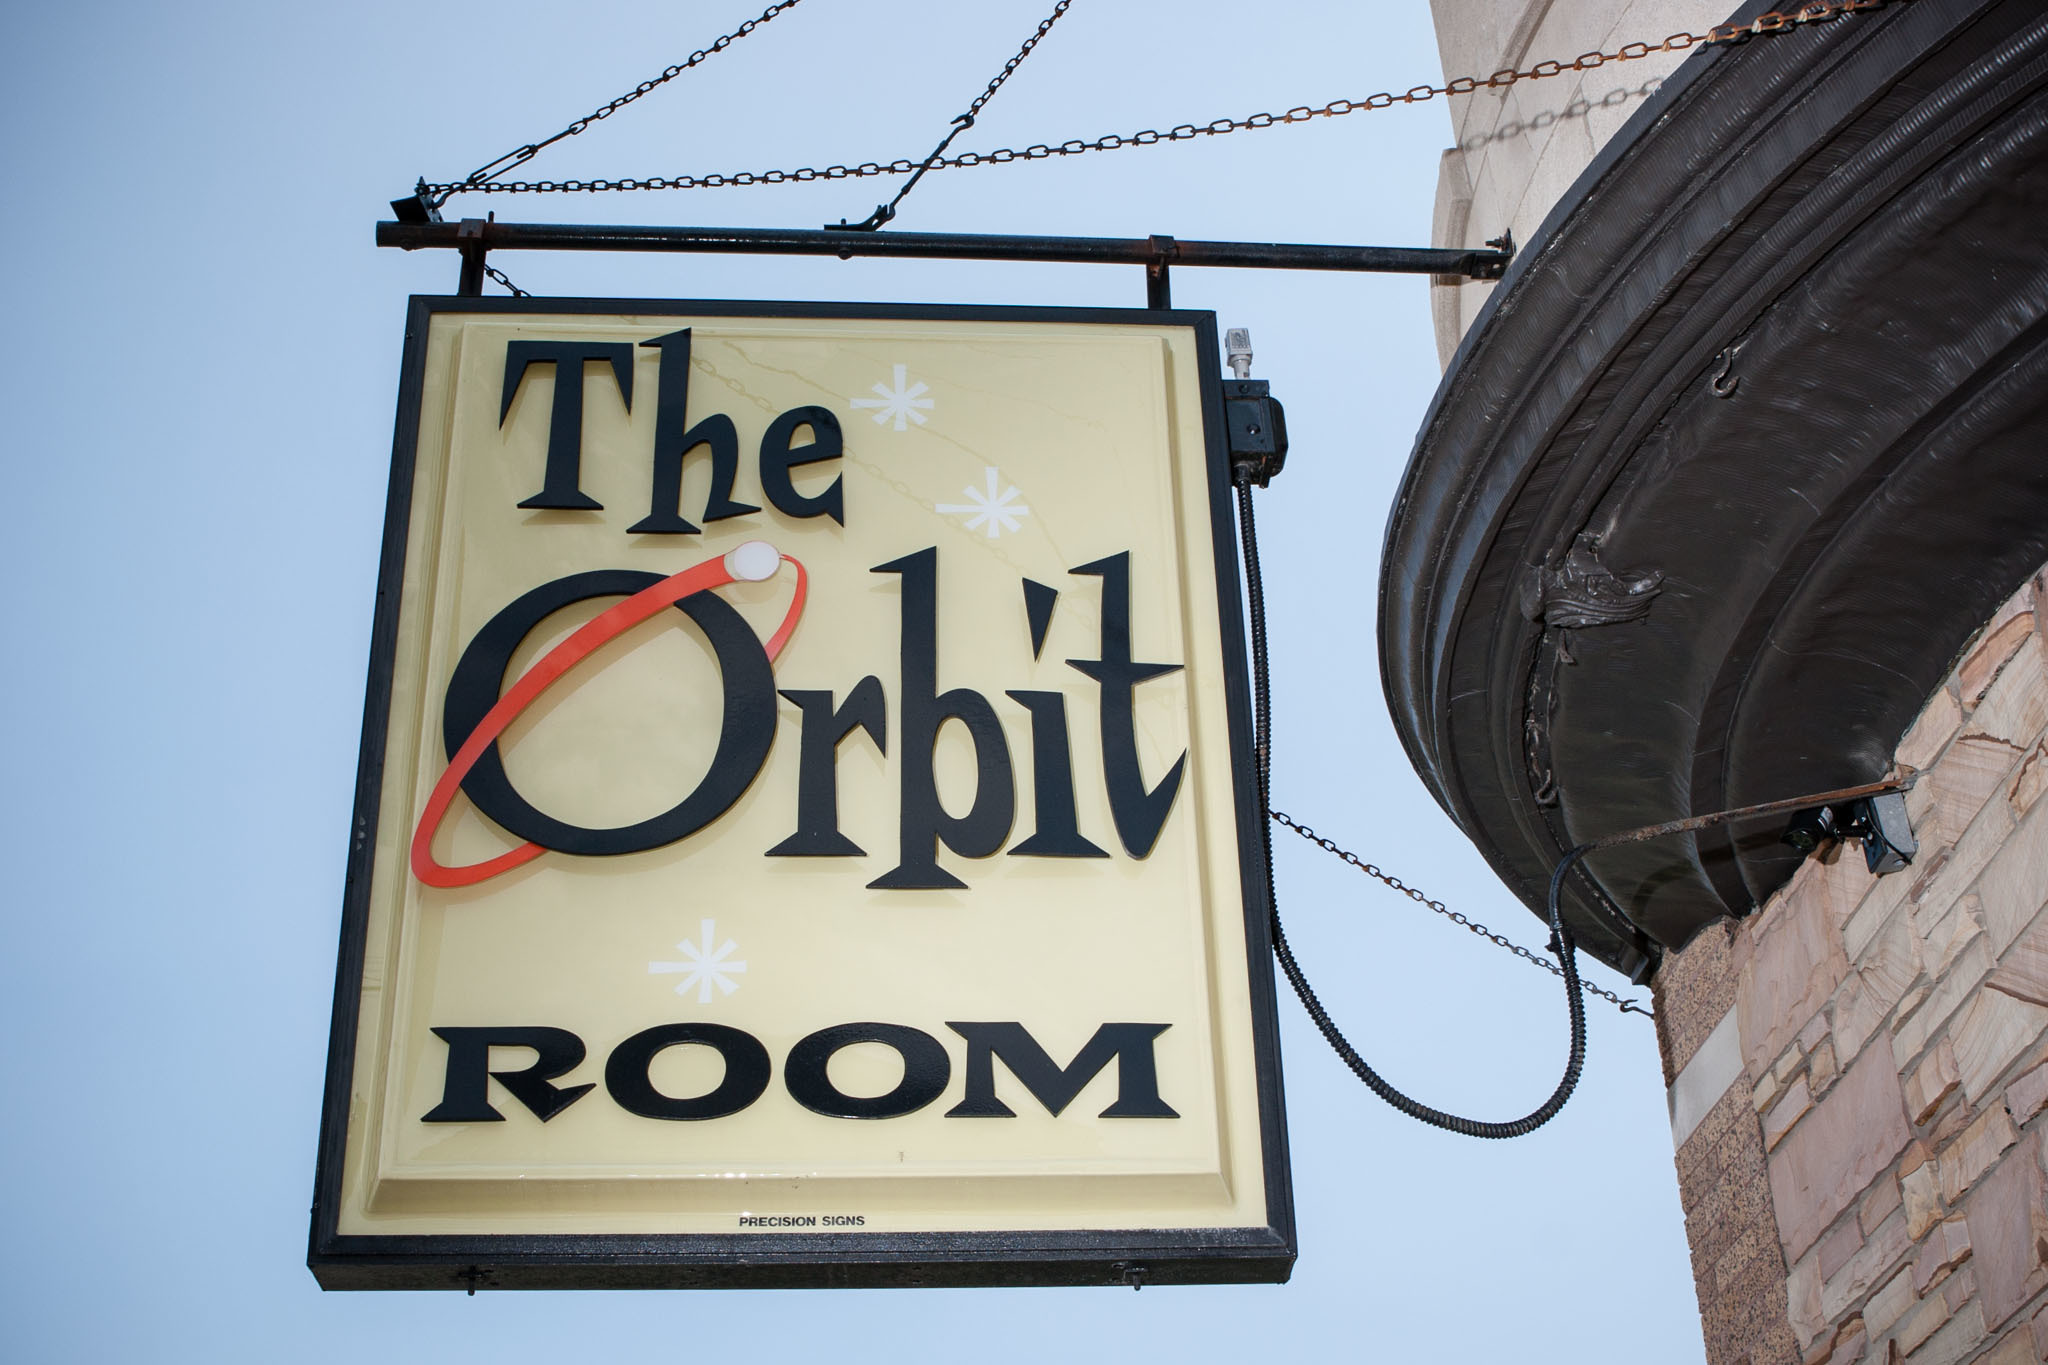 OrbitRoom.Venue.jpg